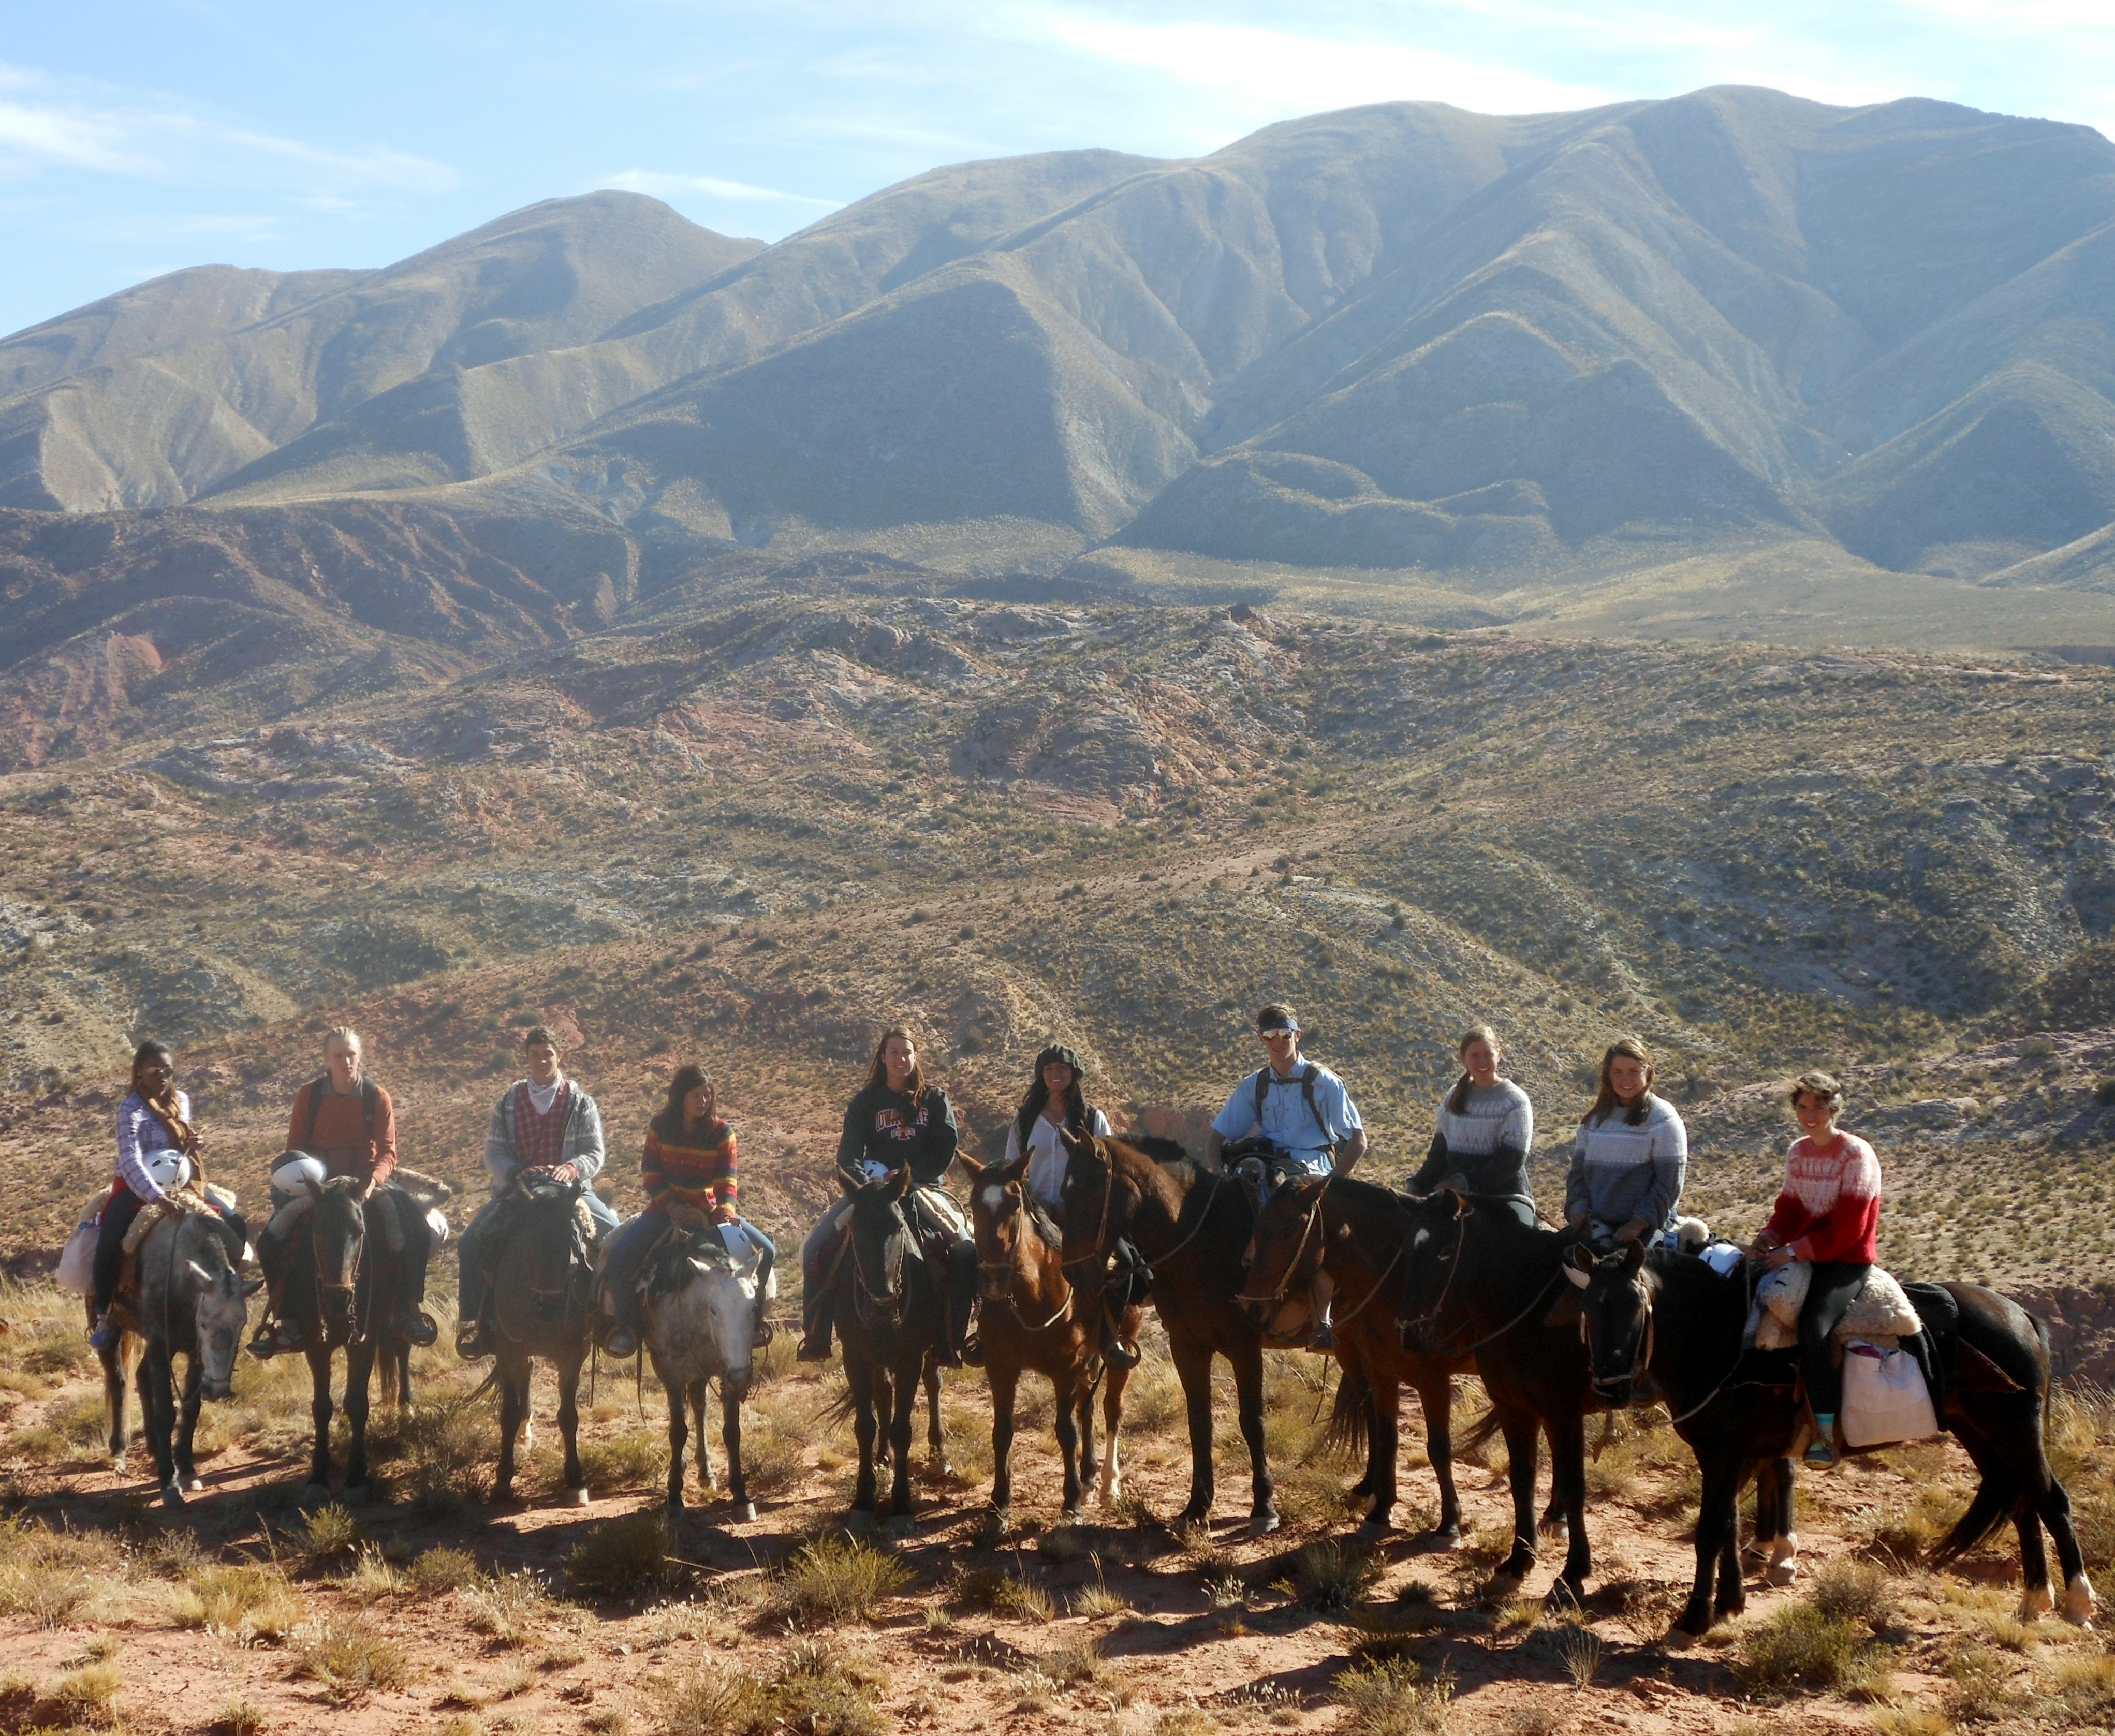 Summer Program - Adventure/Trips | Experiment in International Living: Argentina - Community Service and the Great Outdoors